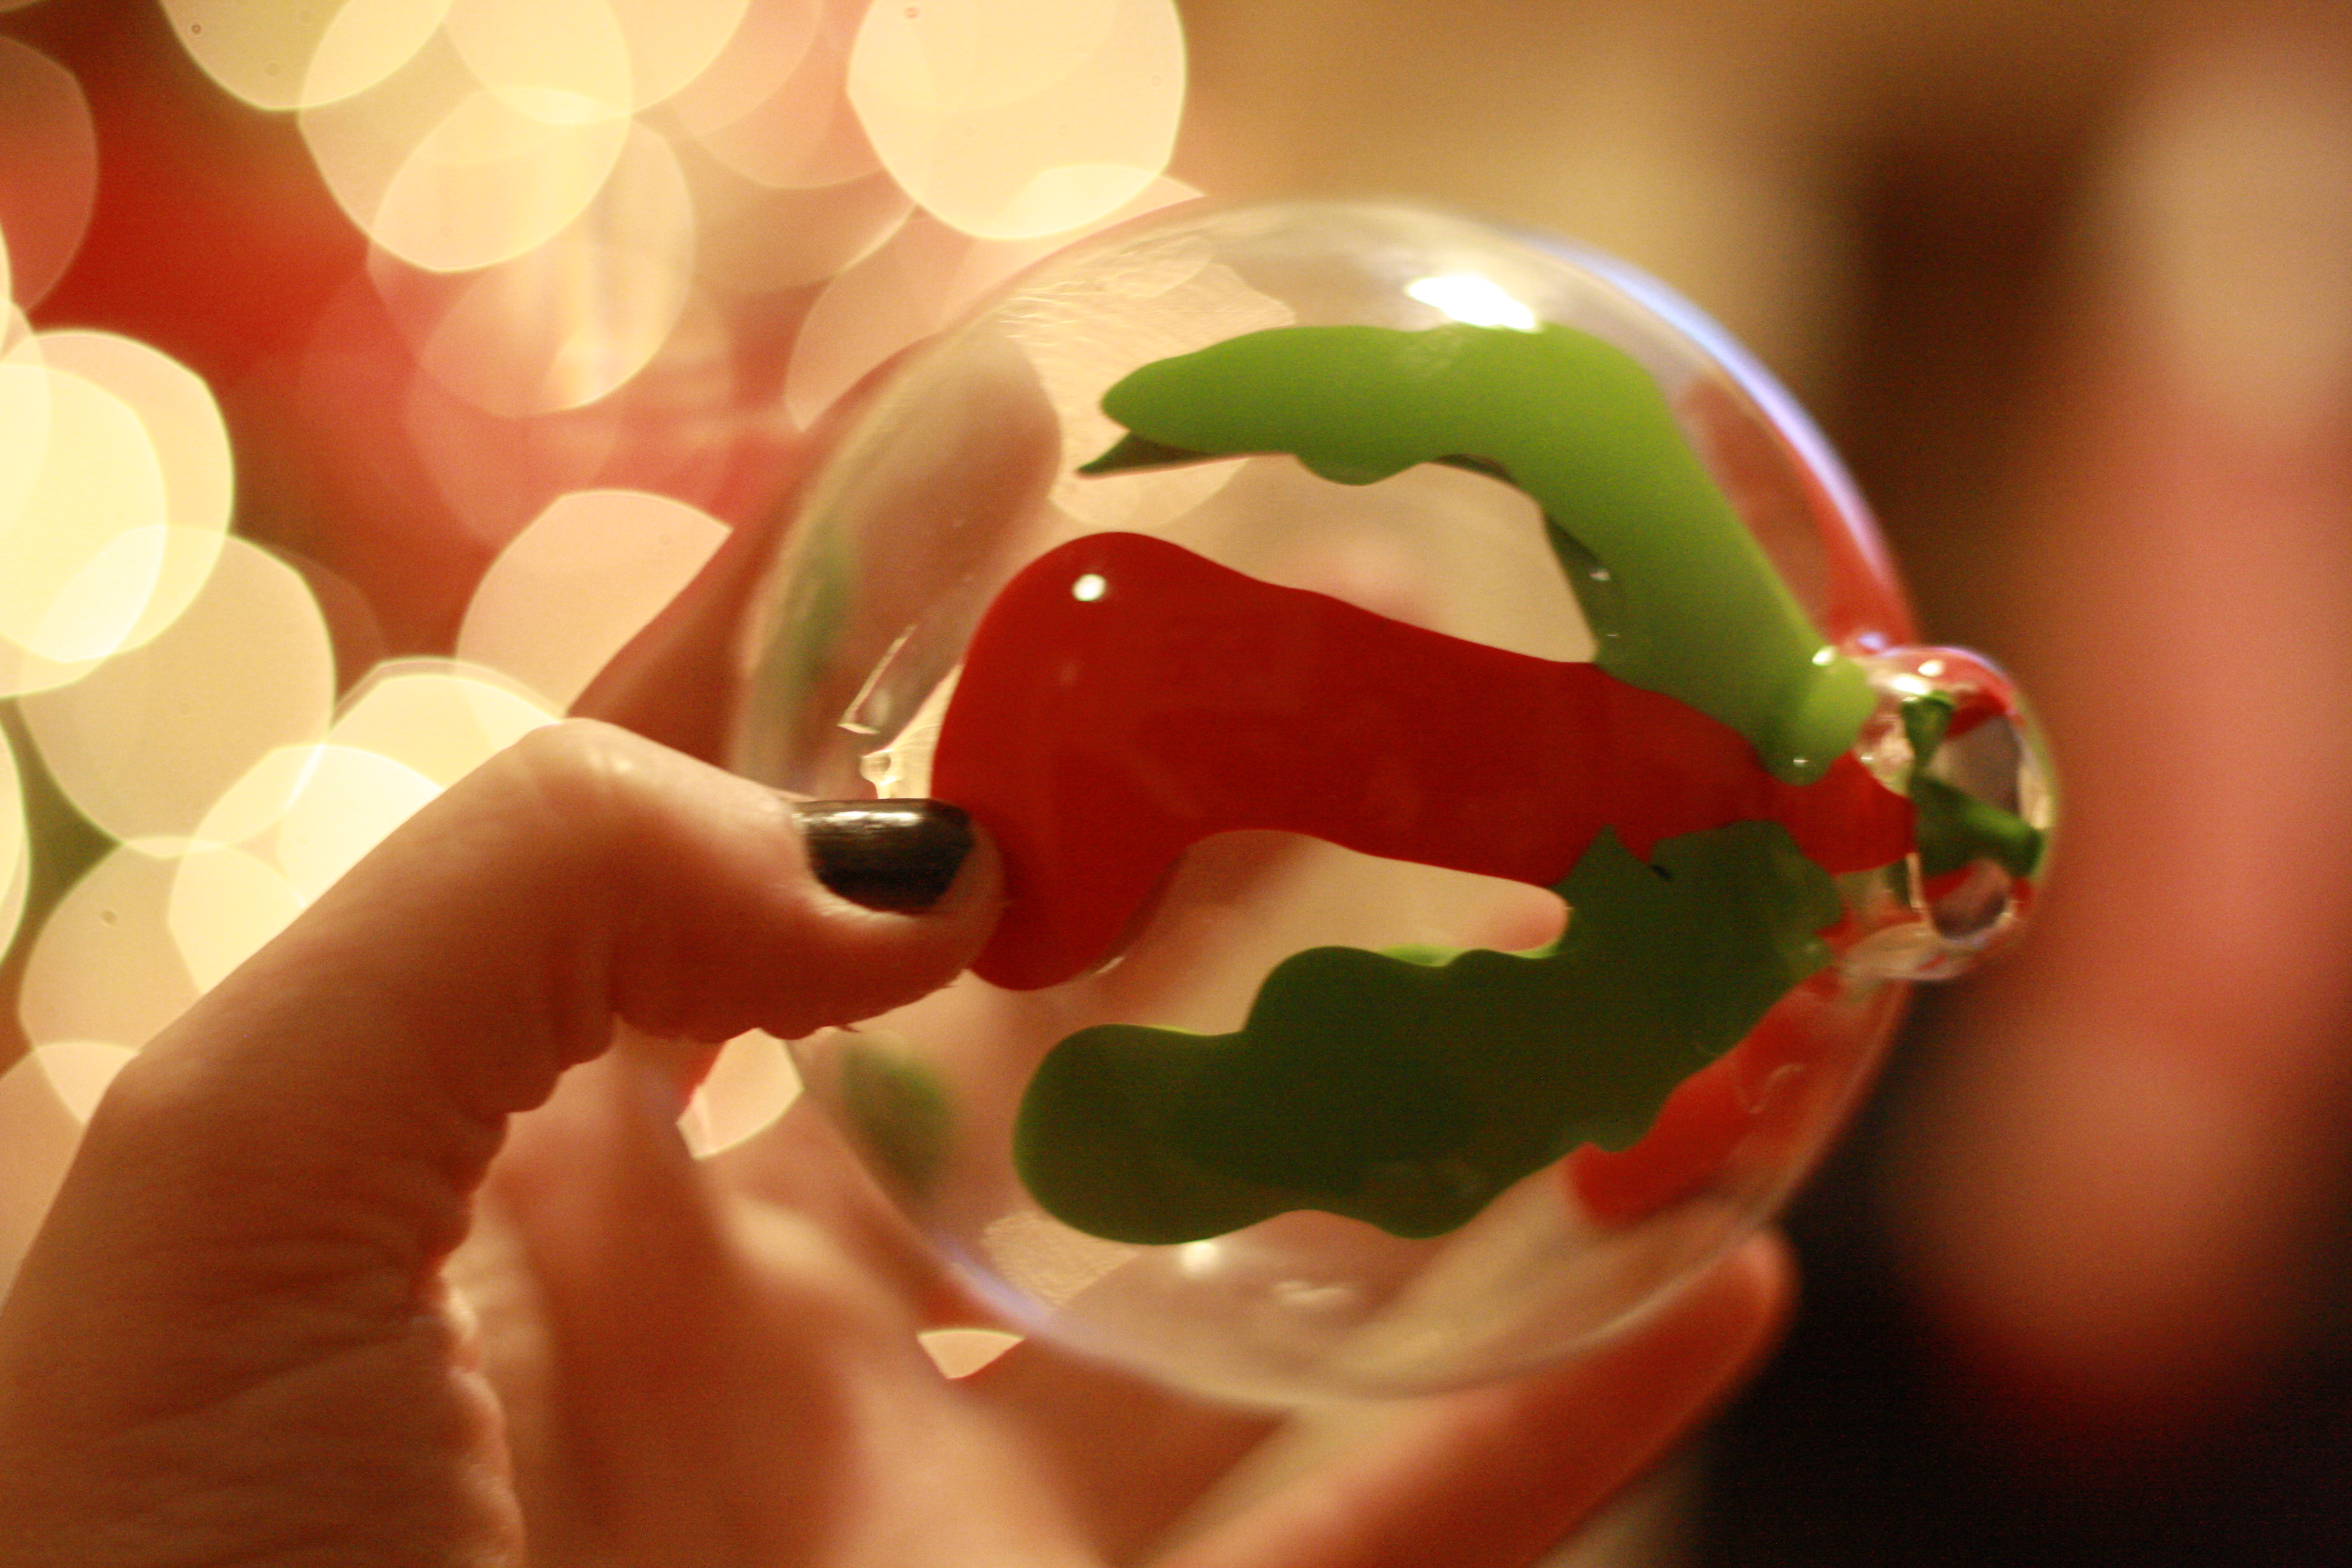 Acrylic clear ornaments - Cover The Opening And Shake The Paint Until The Entire Ornament Is Covered